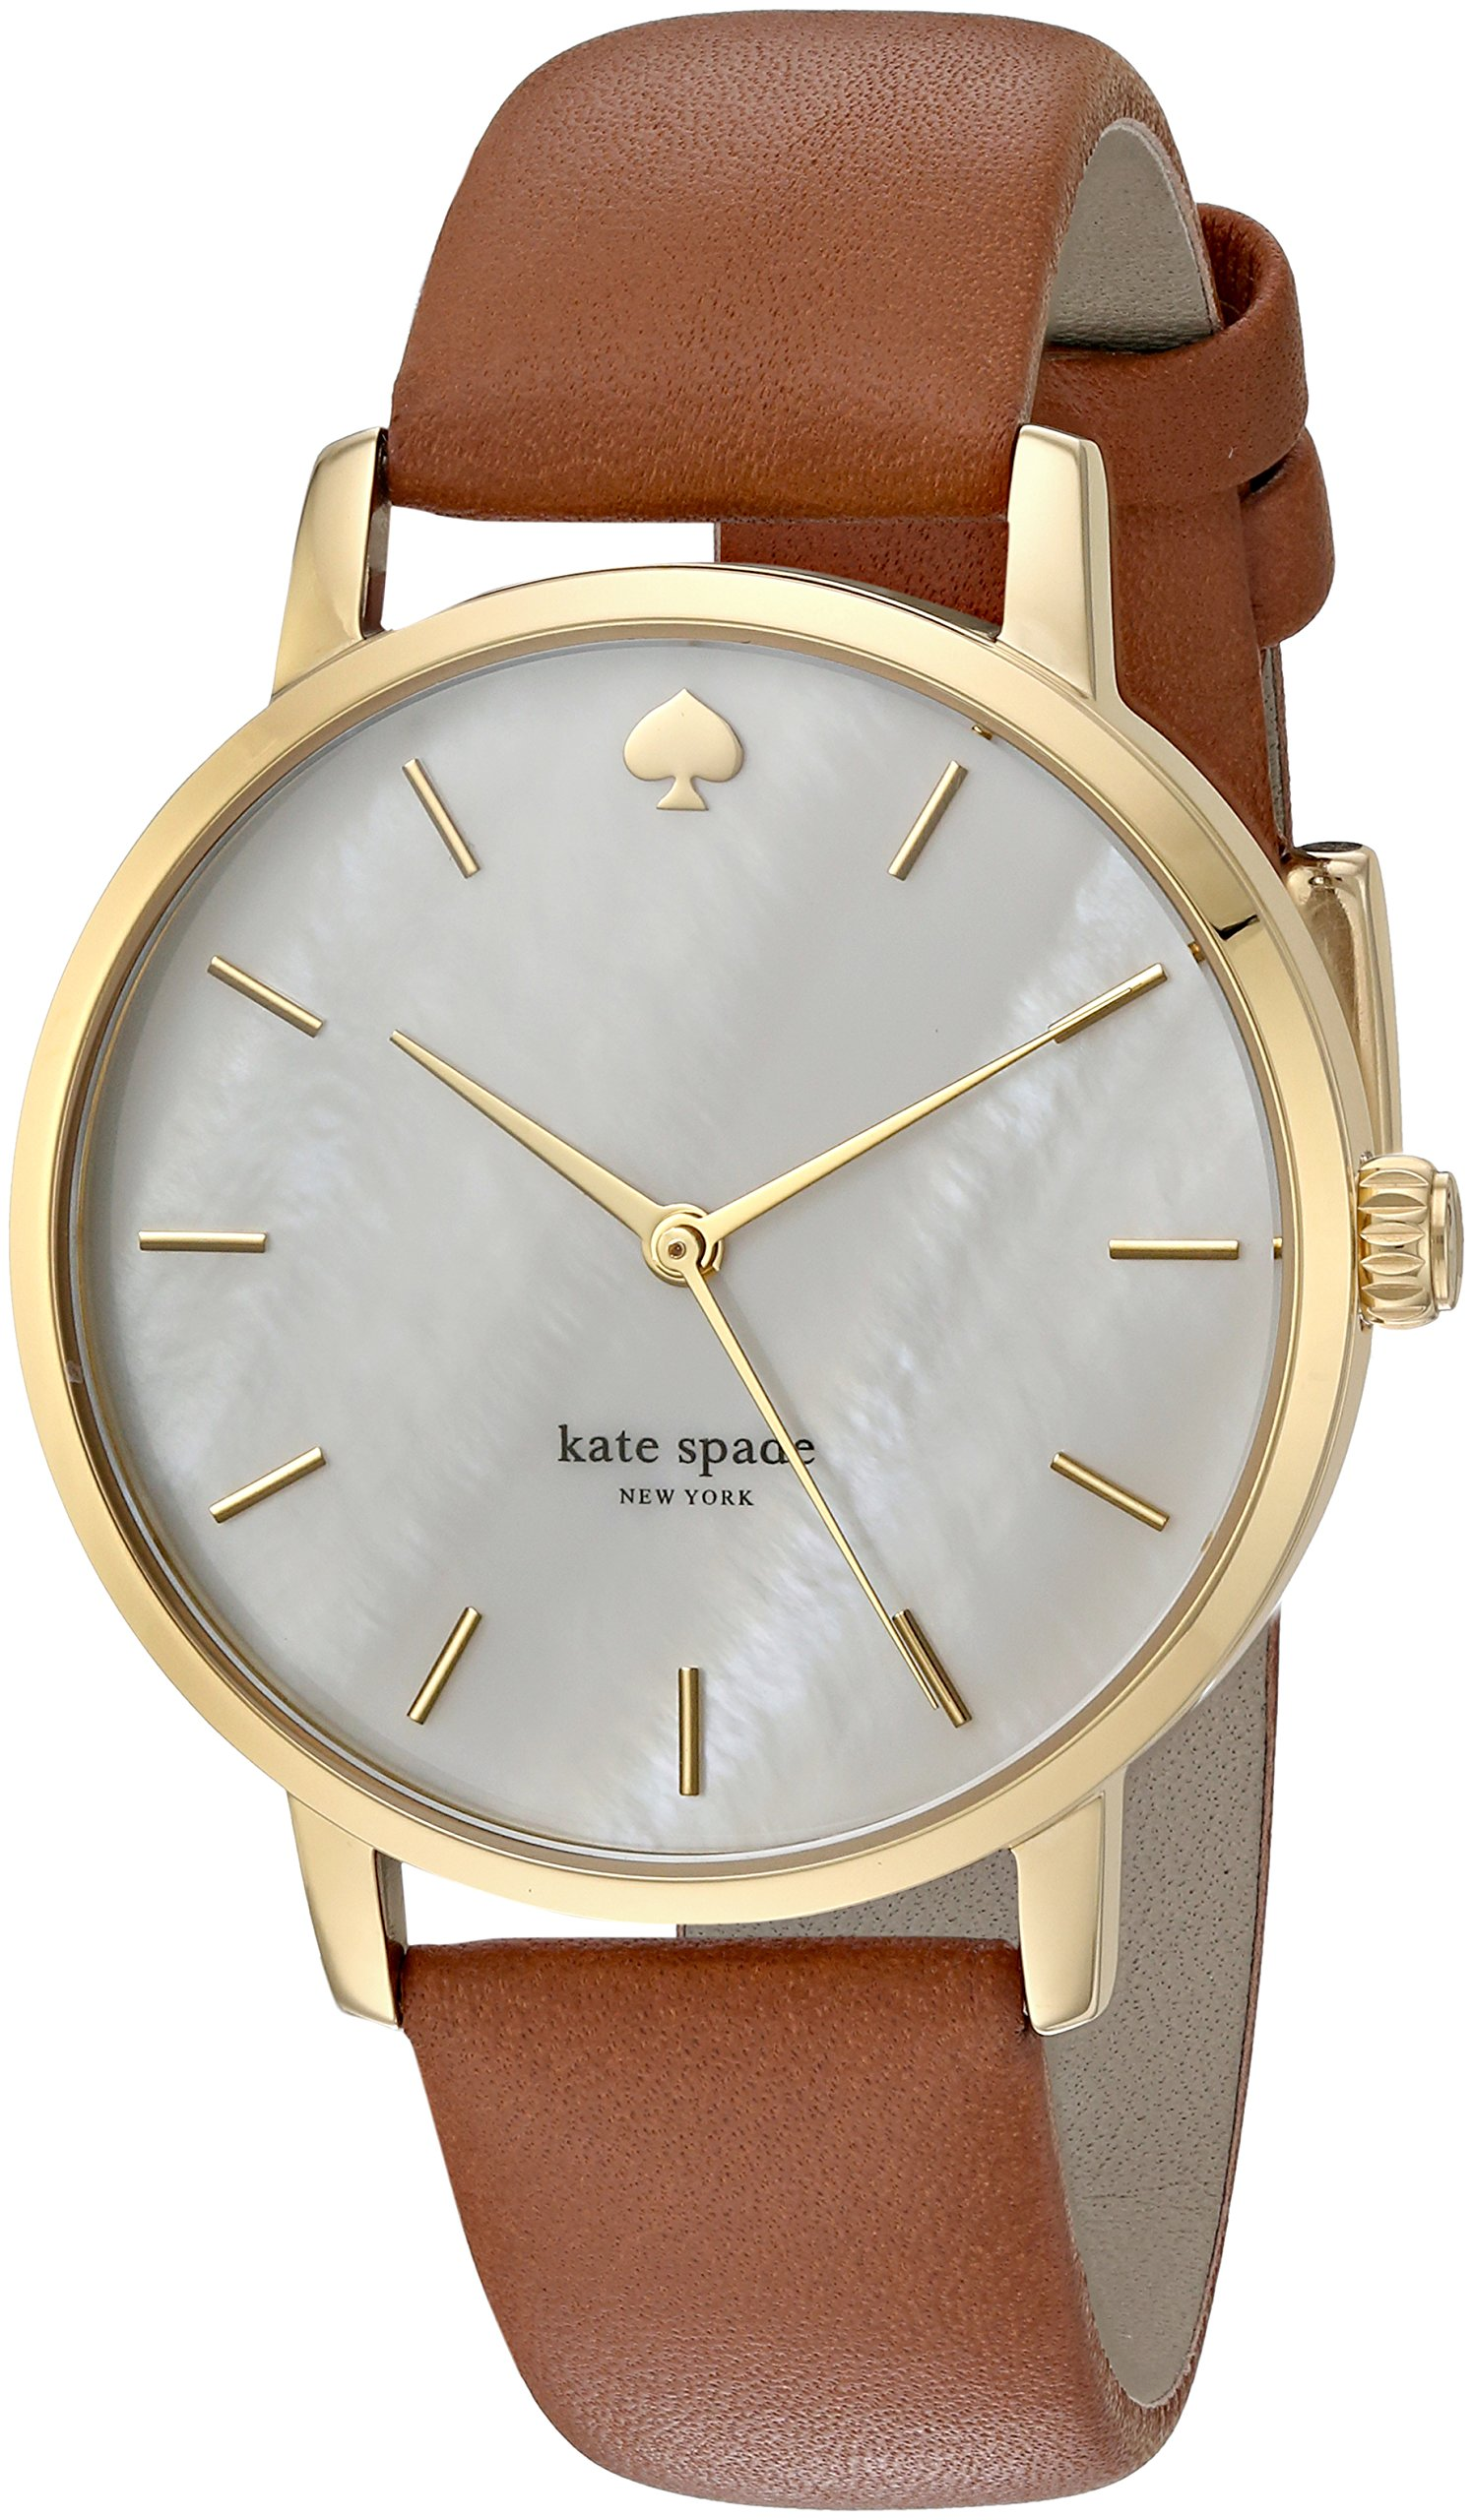 kate spade new york Women's 'Metro' Quartz Stainless Steel and Leather Casual Watch, Color:Brown (Model: KSW1142)